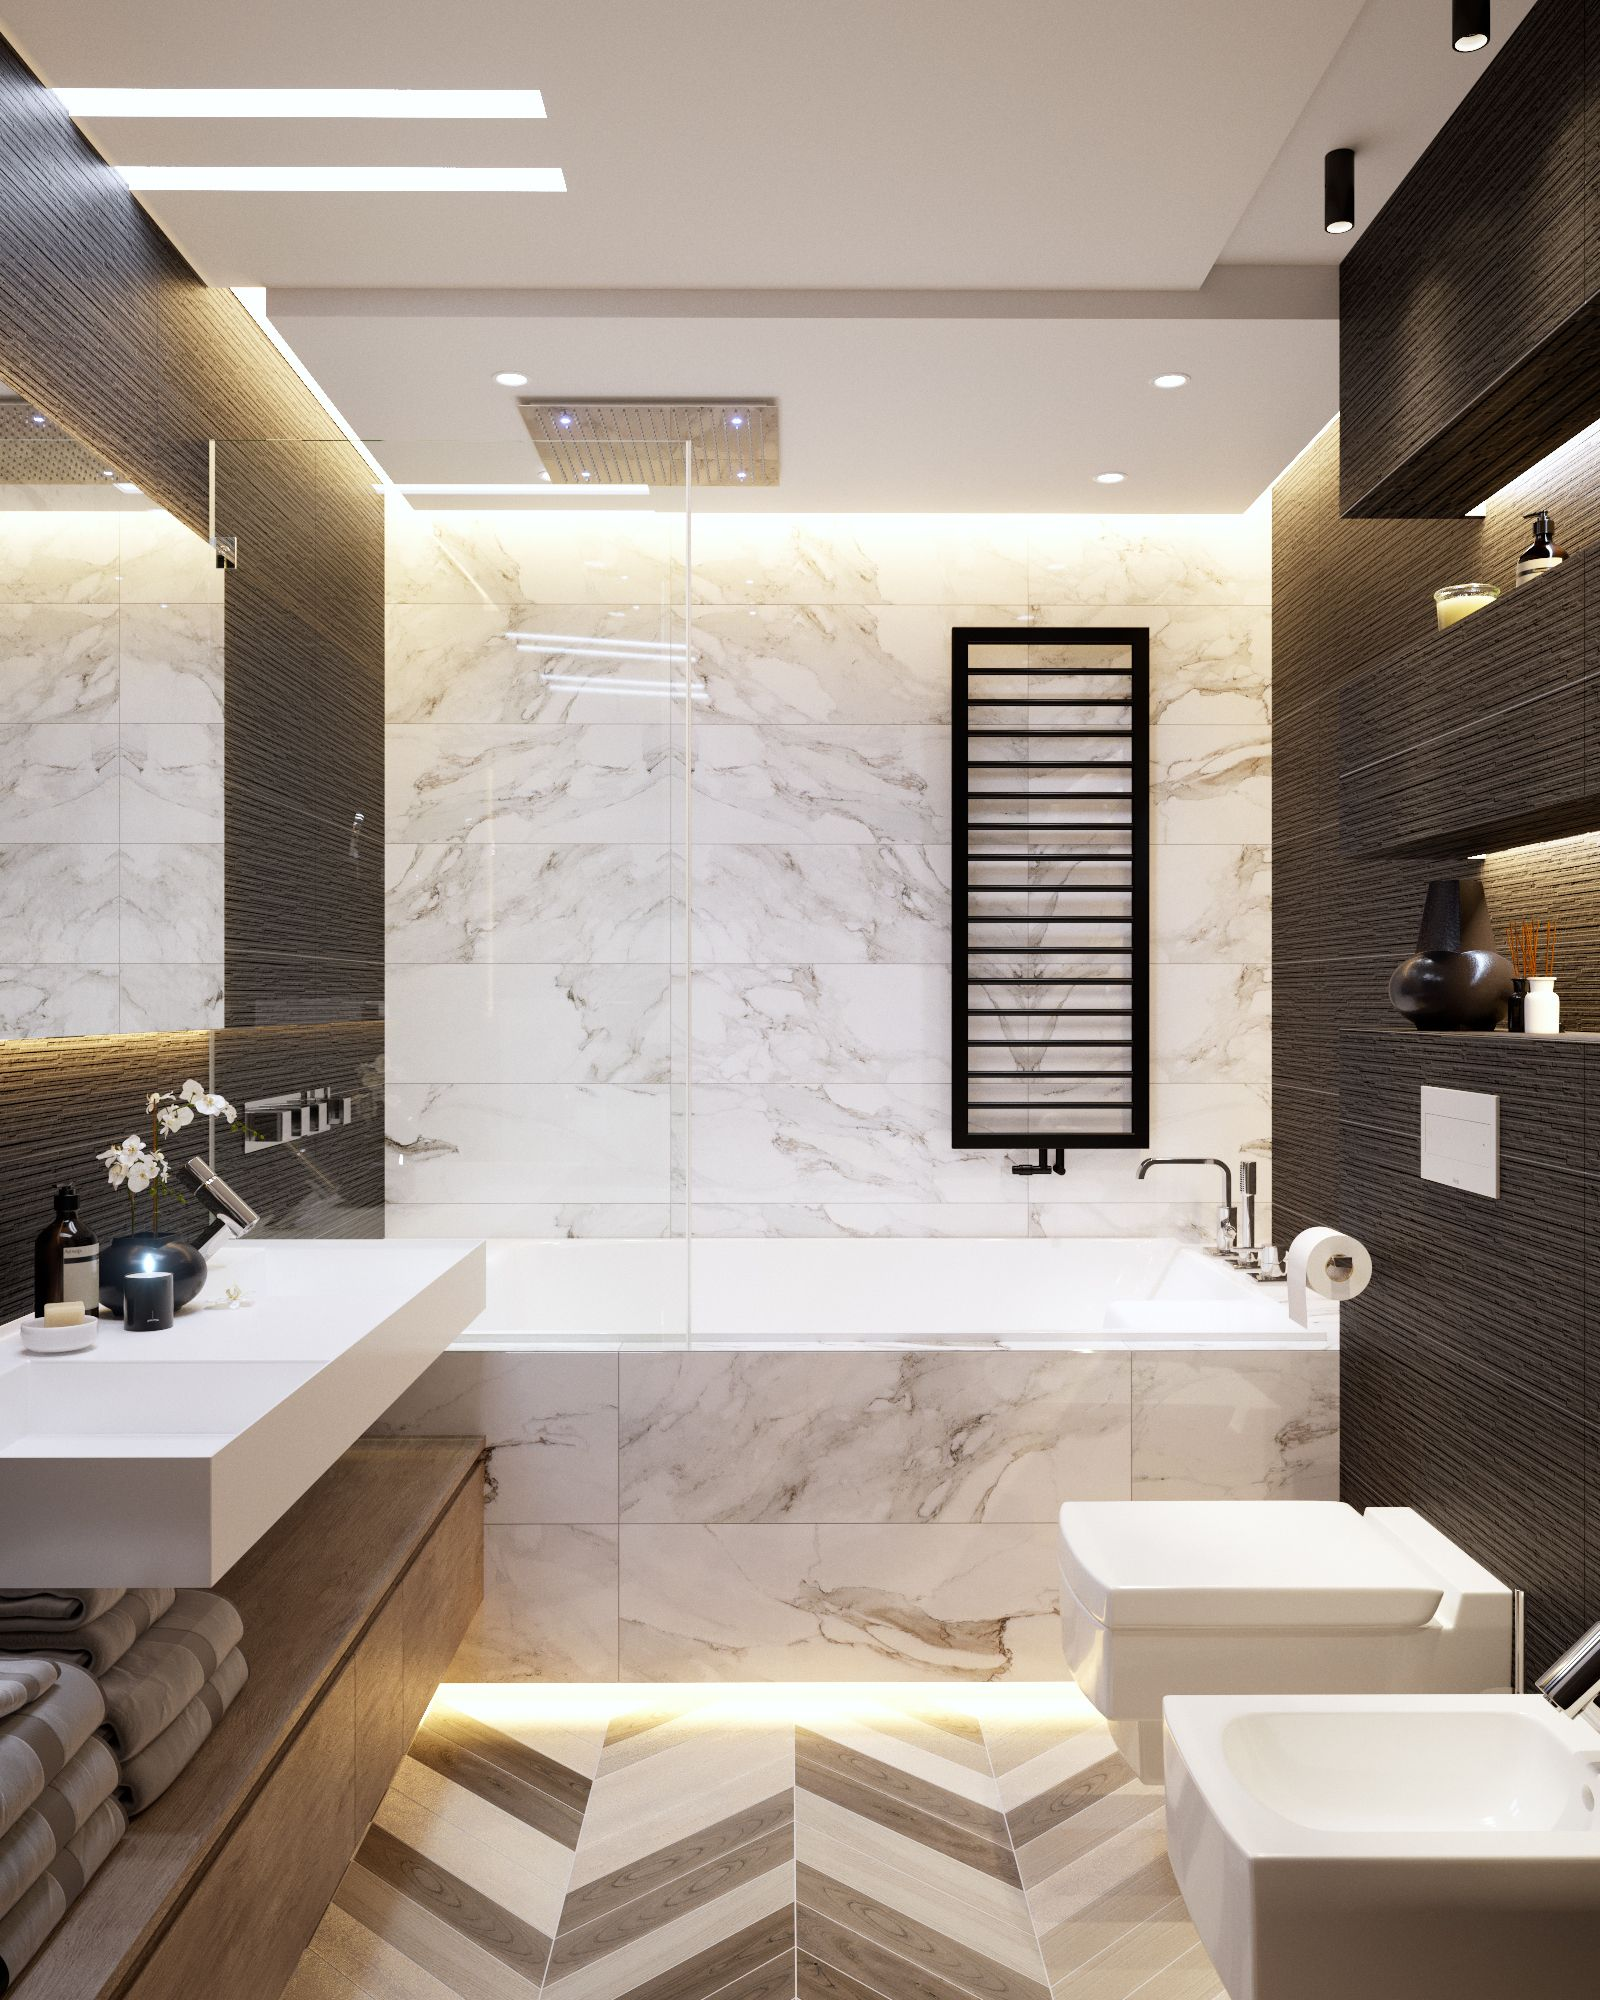 Interior design on instagram  cbeautiful bathroom by wow designeu      going to take  bath maybe shower in home decor house also rh pinterest